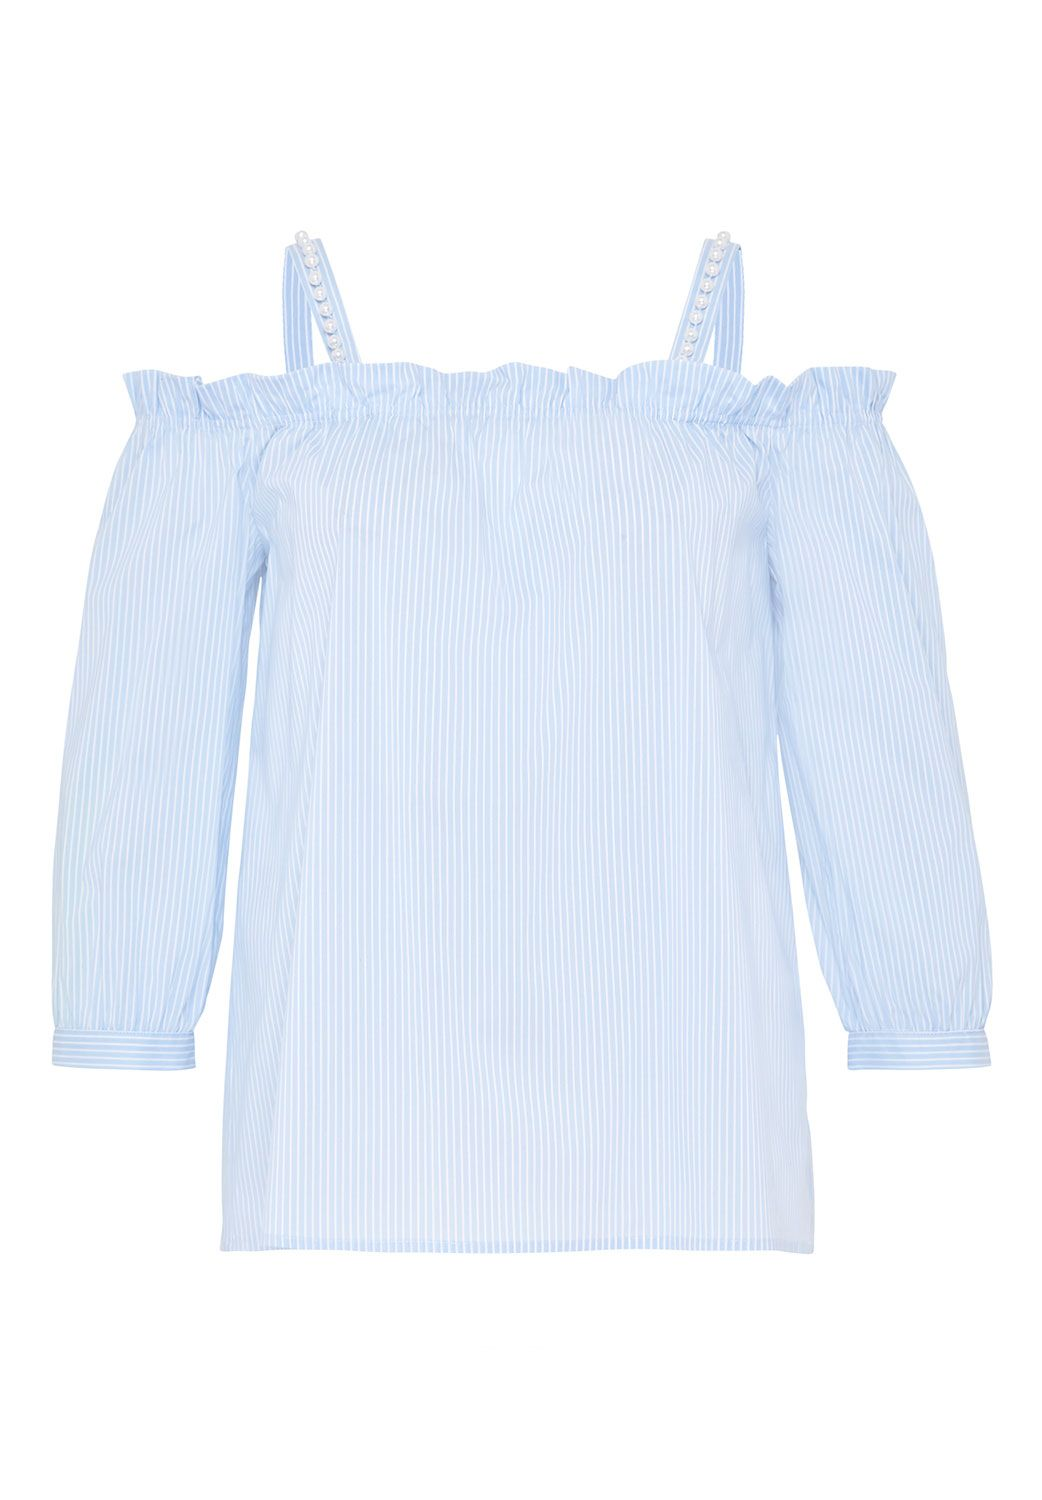 Hallhuber Blouse With Beaded Shoulder Straps, Light Blue